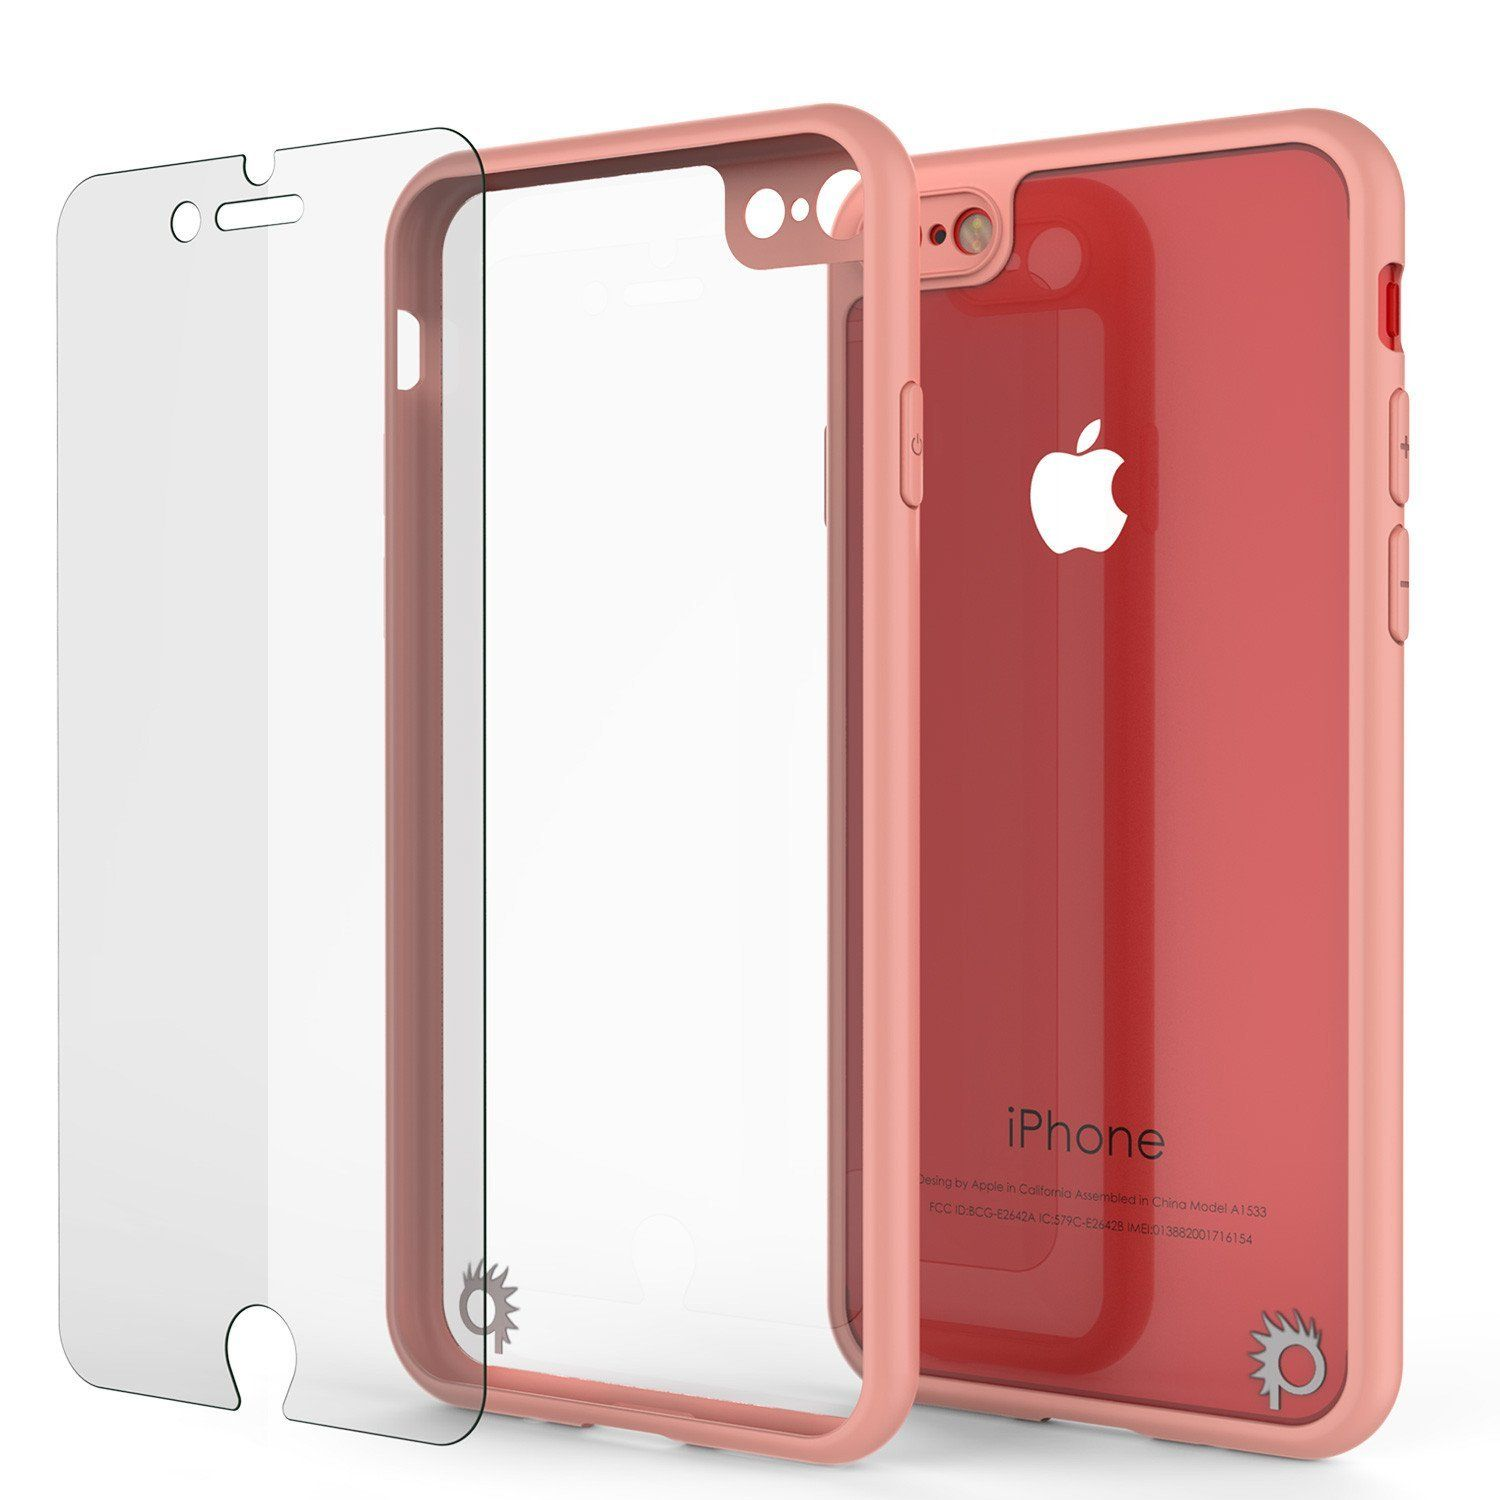 Iphone8 Case Punkcase Mask Series Pink Full Body Hybrid Dual Laye Glass Screen Protector Iphone Iphone 7 Screen Protector Iphone 6s Glass Screen Protector